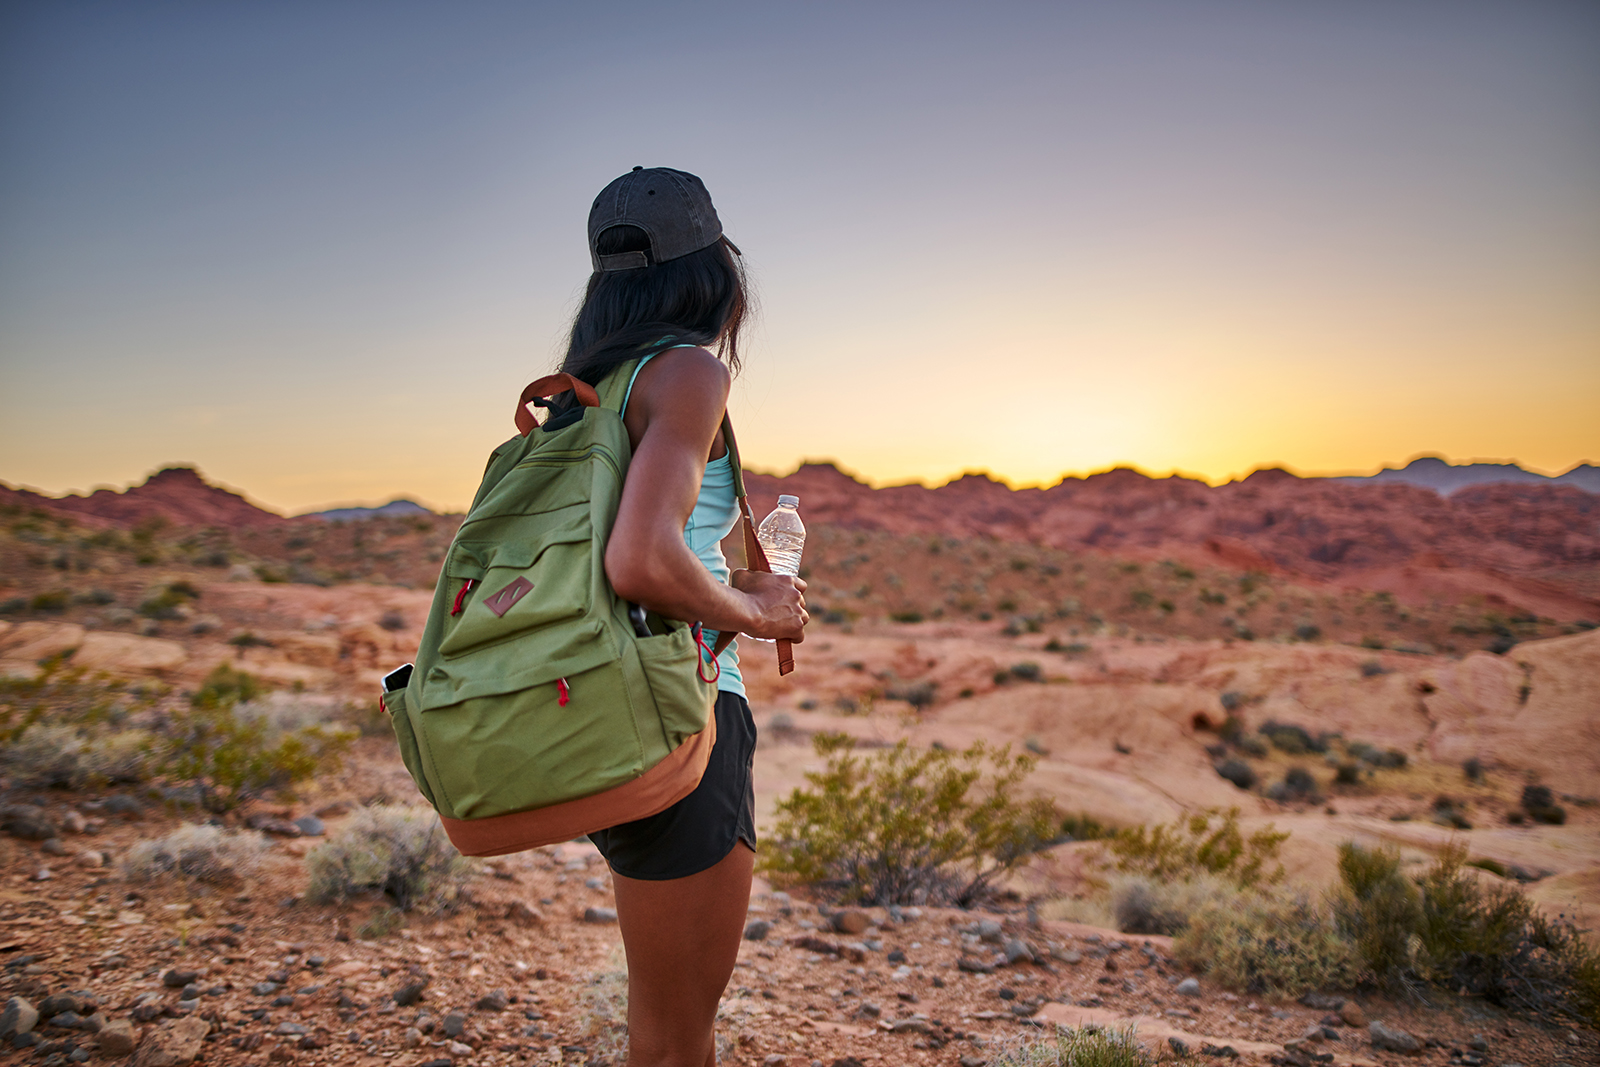 Woman backpacking in desert